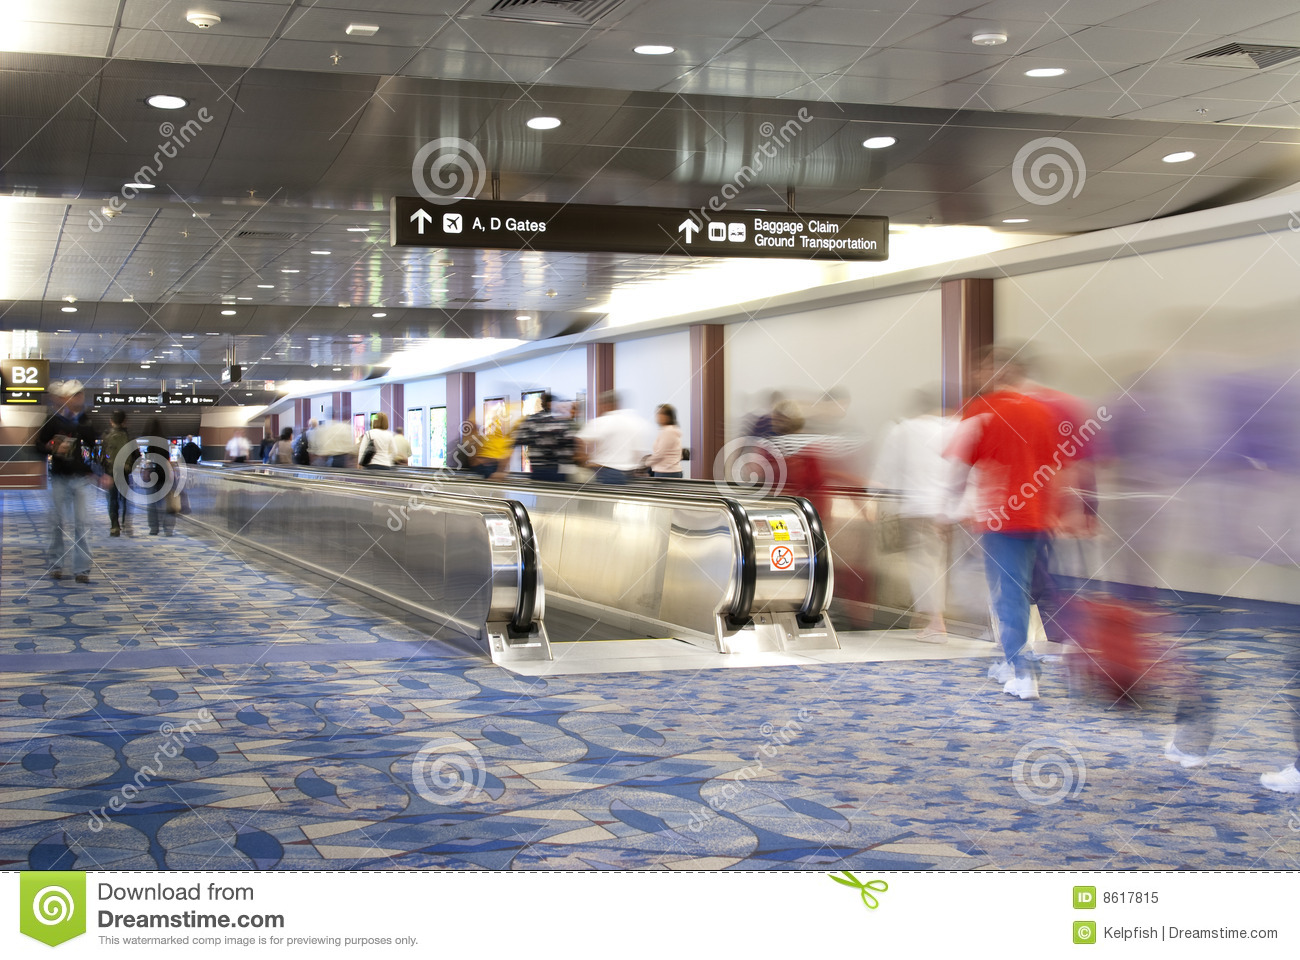 Airport People Mover Escalator Royalty Free Stock Photo.